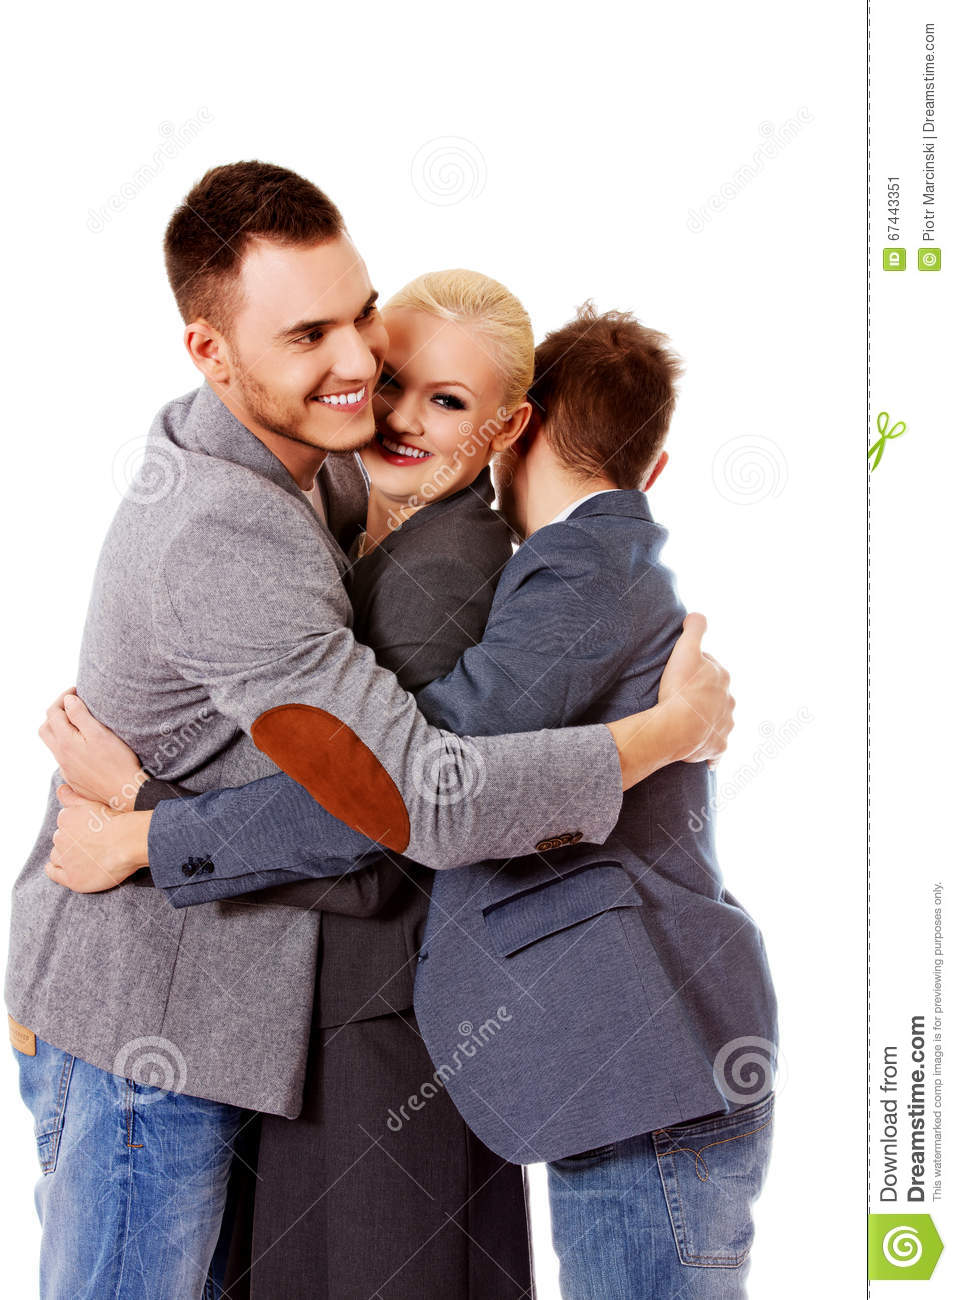 hugging three happy friendship preview